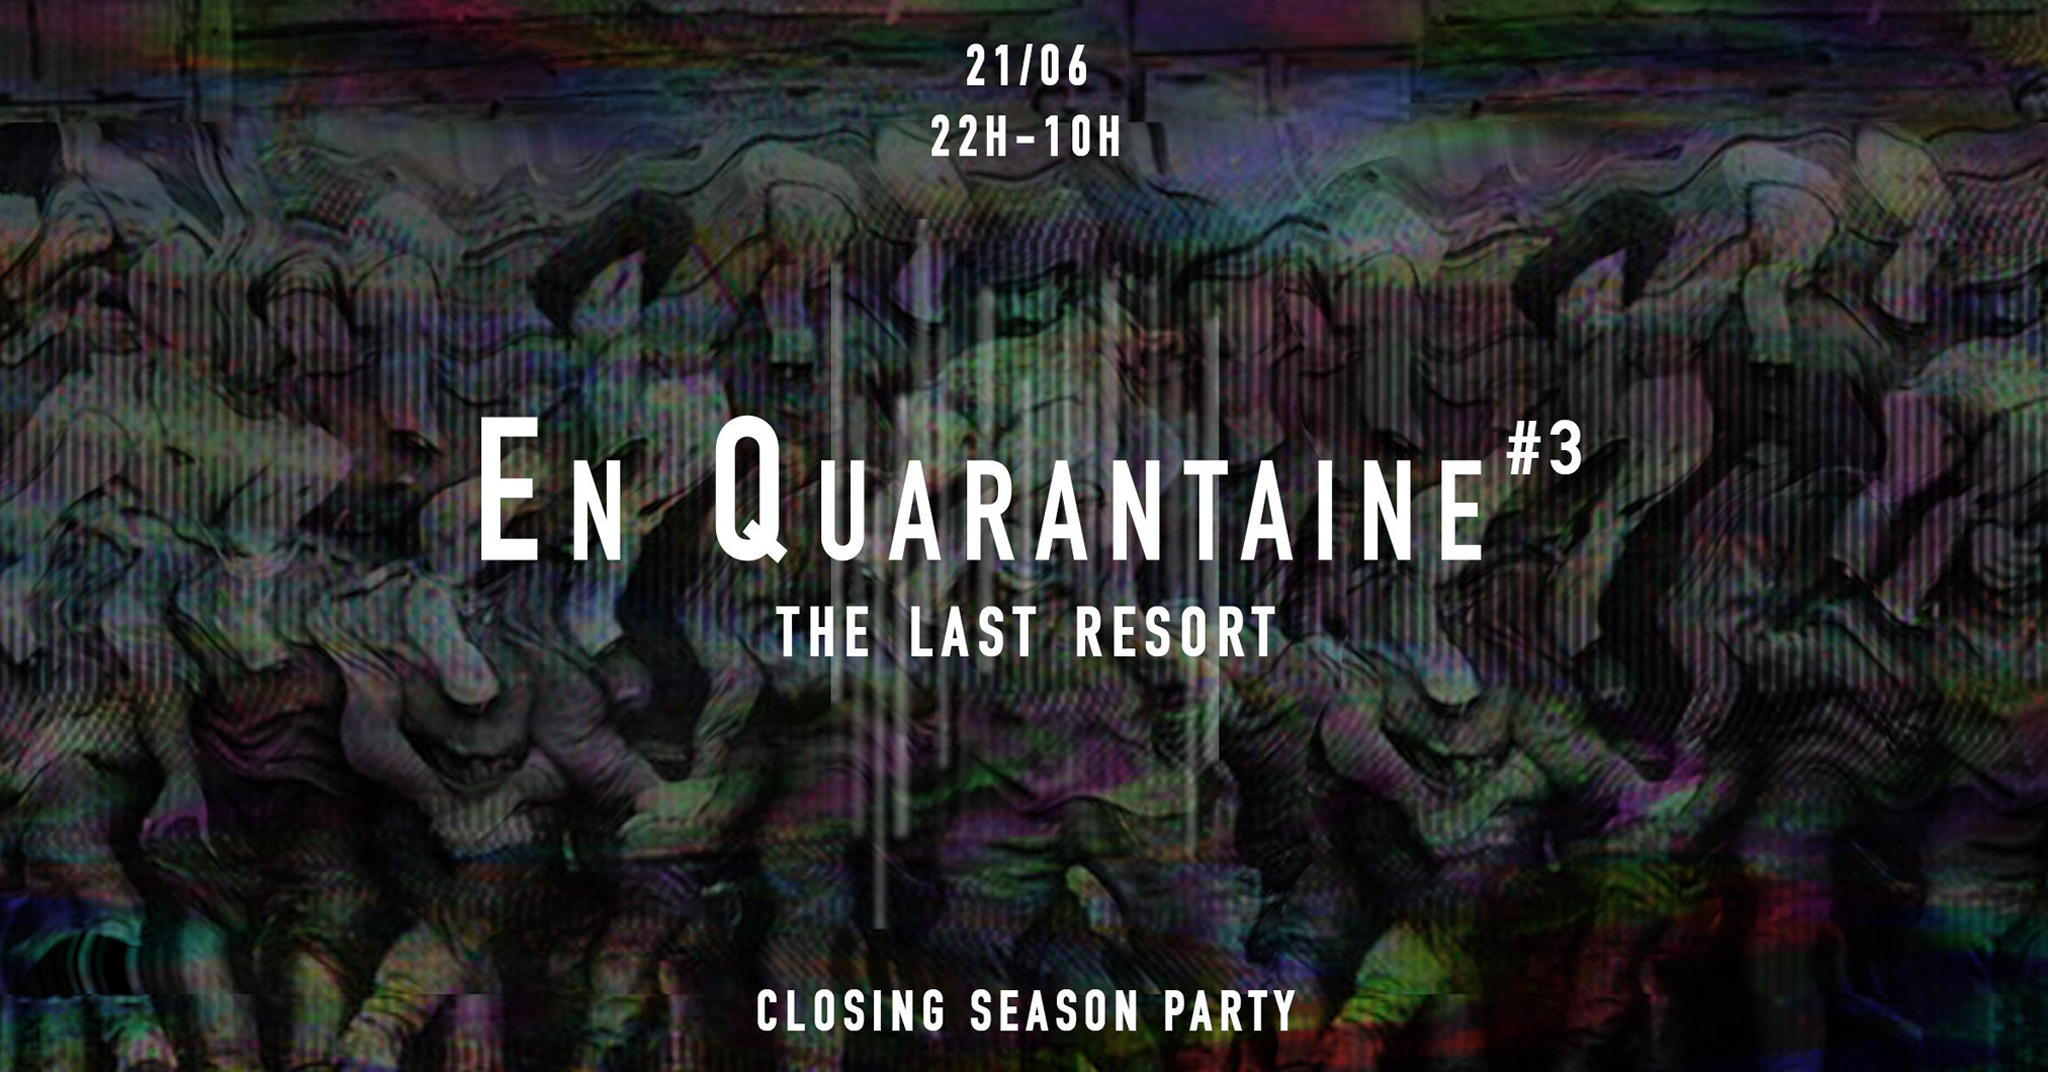 En Quarantaine #3 : The Last Resort [SOLD OUT]